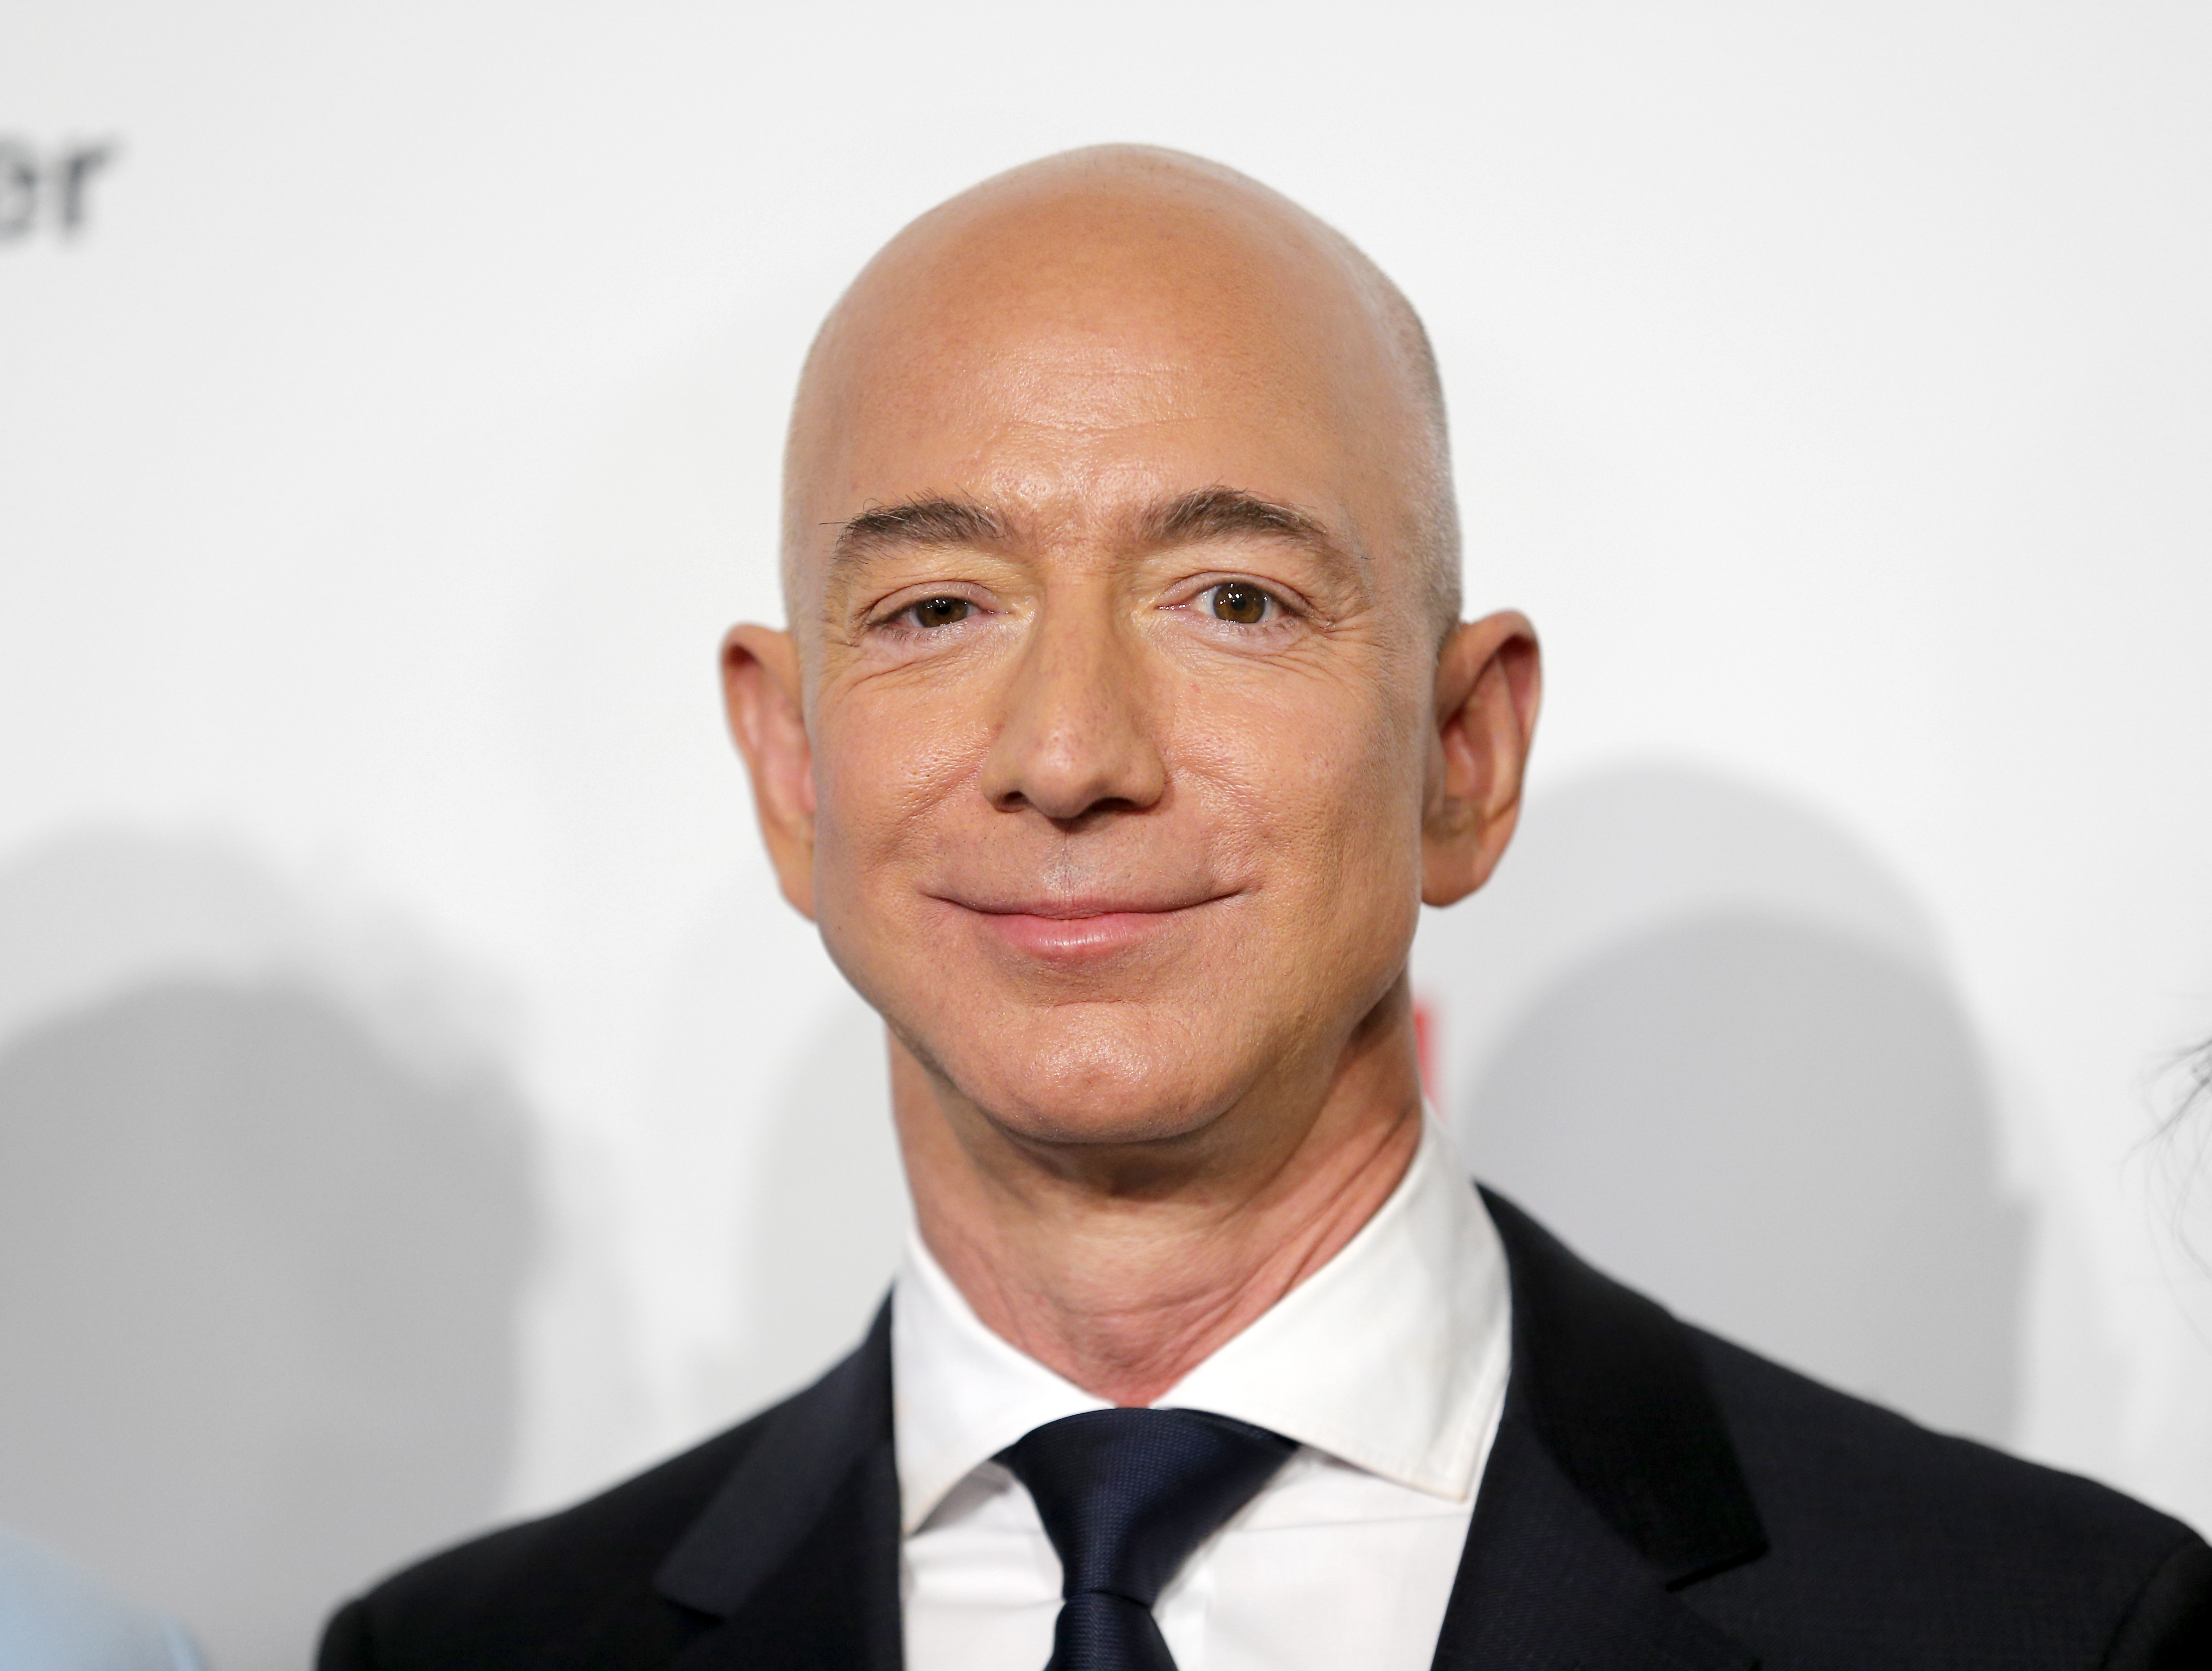 Jeff Bezos Becomes Richest Man in Modern History   Fortune